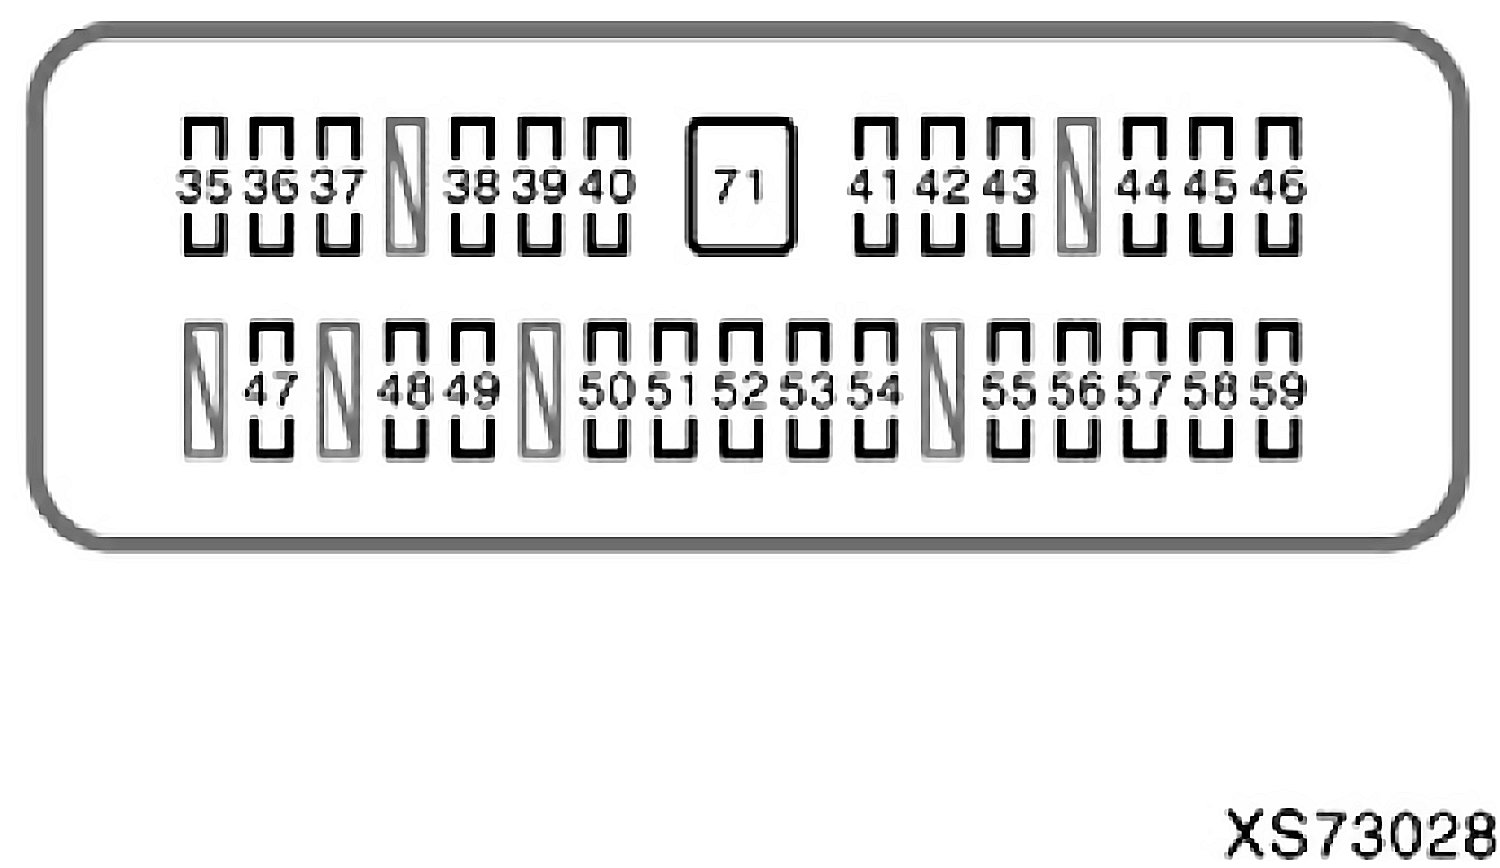 Toyota Tundra Fuse Box Location